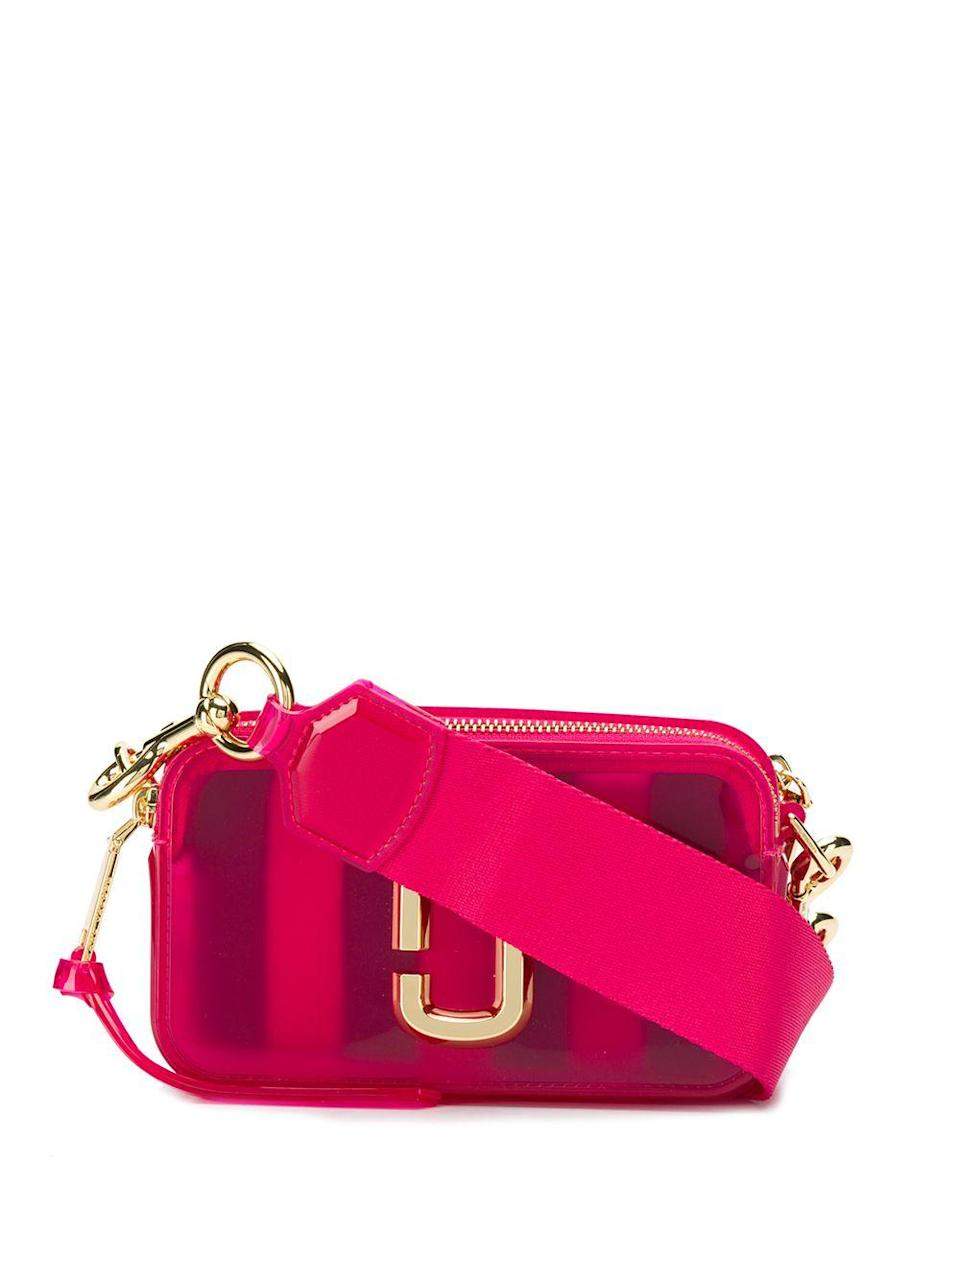 "<br><br><strong>Marc Jacobs</strong> The Jelly Snapshot camera bag, $, available at <a href=""https://go.skimresources.com/?id=30283X879131&url=https%3A%2F%2Fwww.farfetch.com%2Fshopping%2Fwomen%2Fmarc-jacobs-the-jelly-snapshot-camera-bag-item-14156911.aspx"" rel=""nofollow noopener"" target=""_blank"" data-ylk=""slk:Farfetch"" class=""link rapid-noclick-resp"">Farfetch</a>"